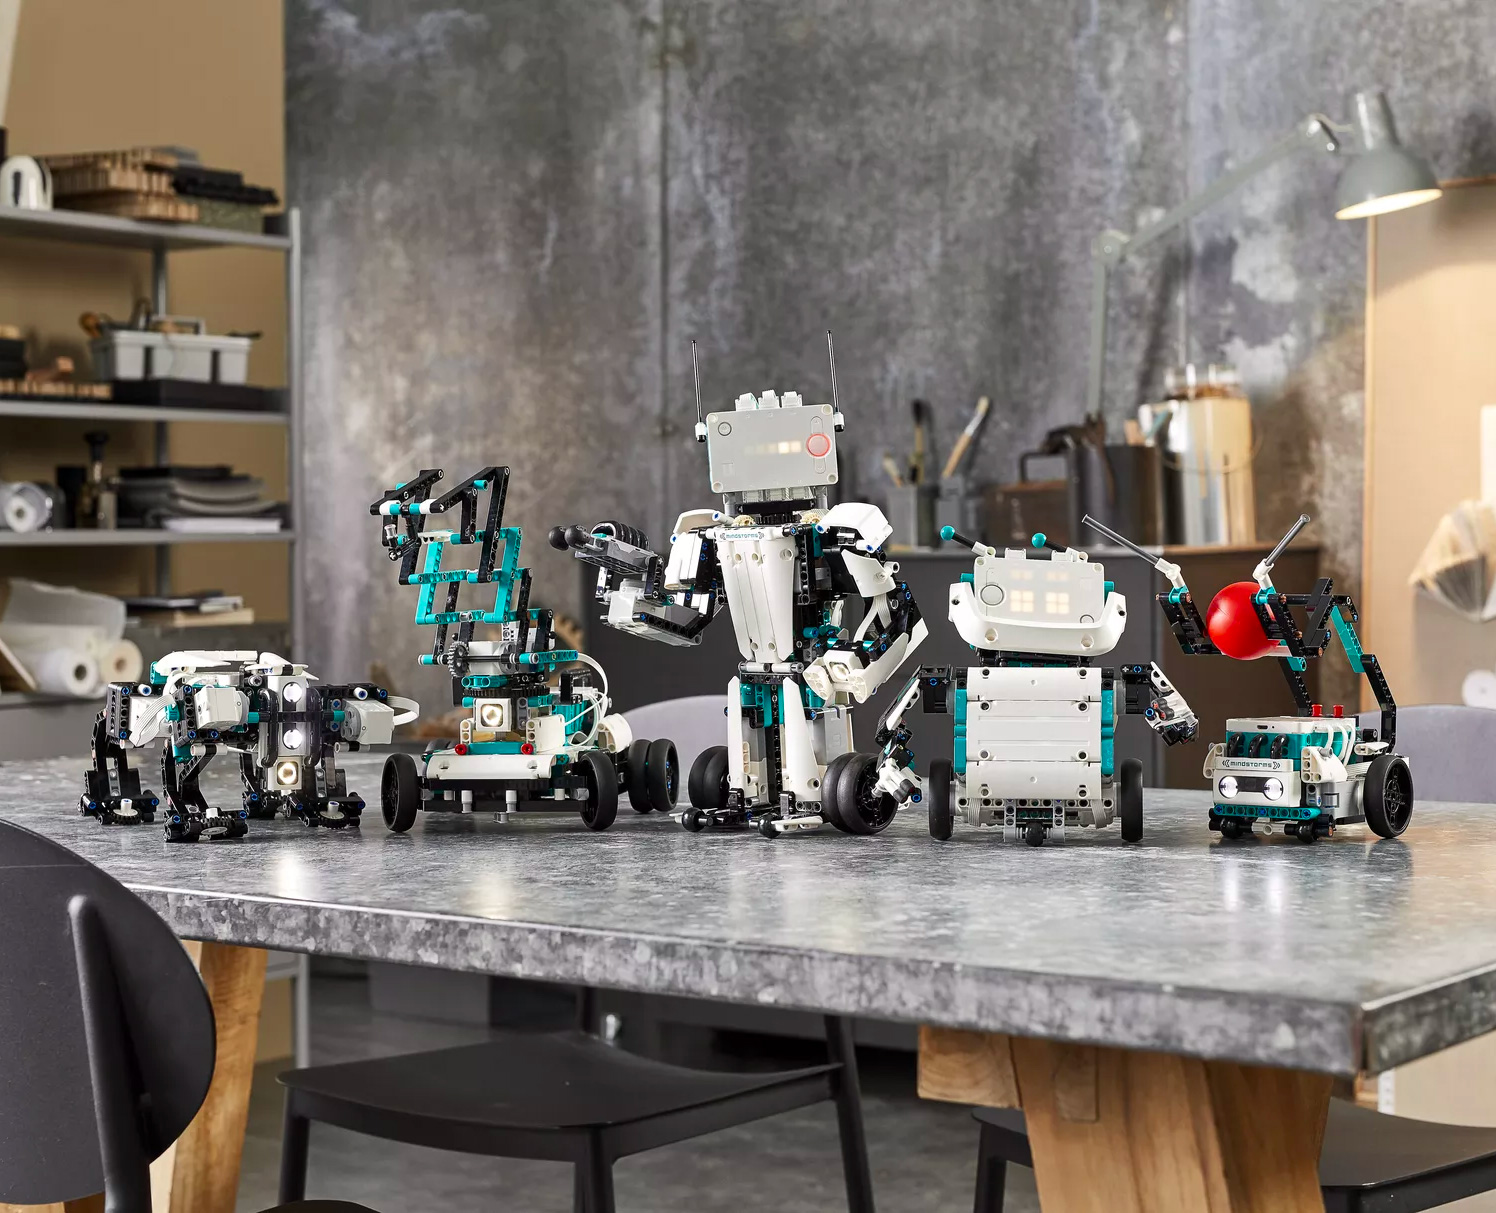 Lego Makes It Easier To Build Your Own 'Bot at werd.com